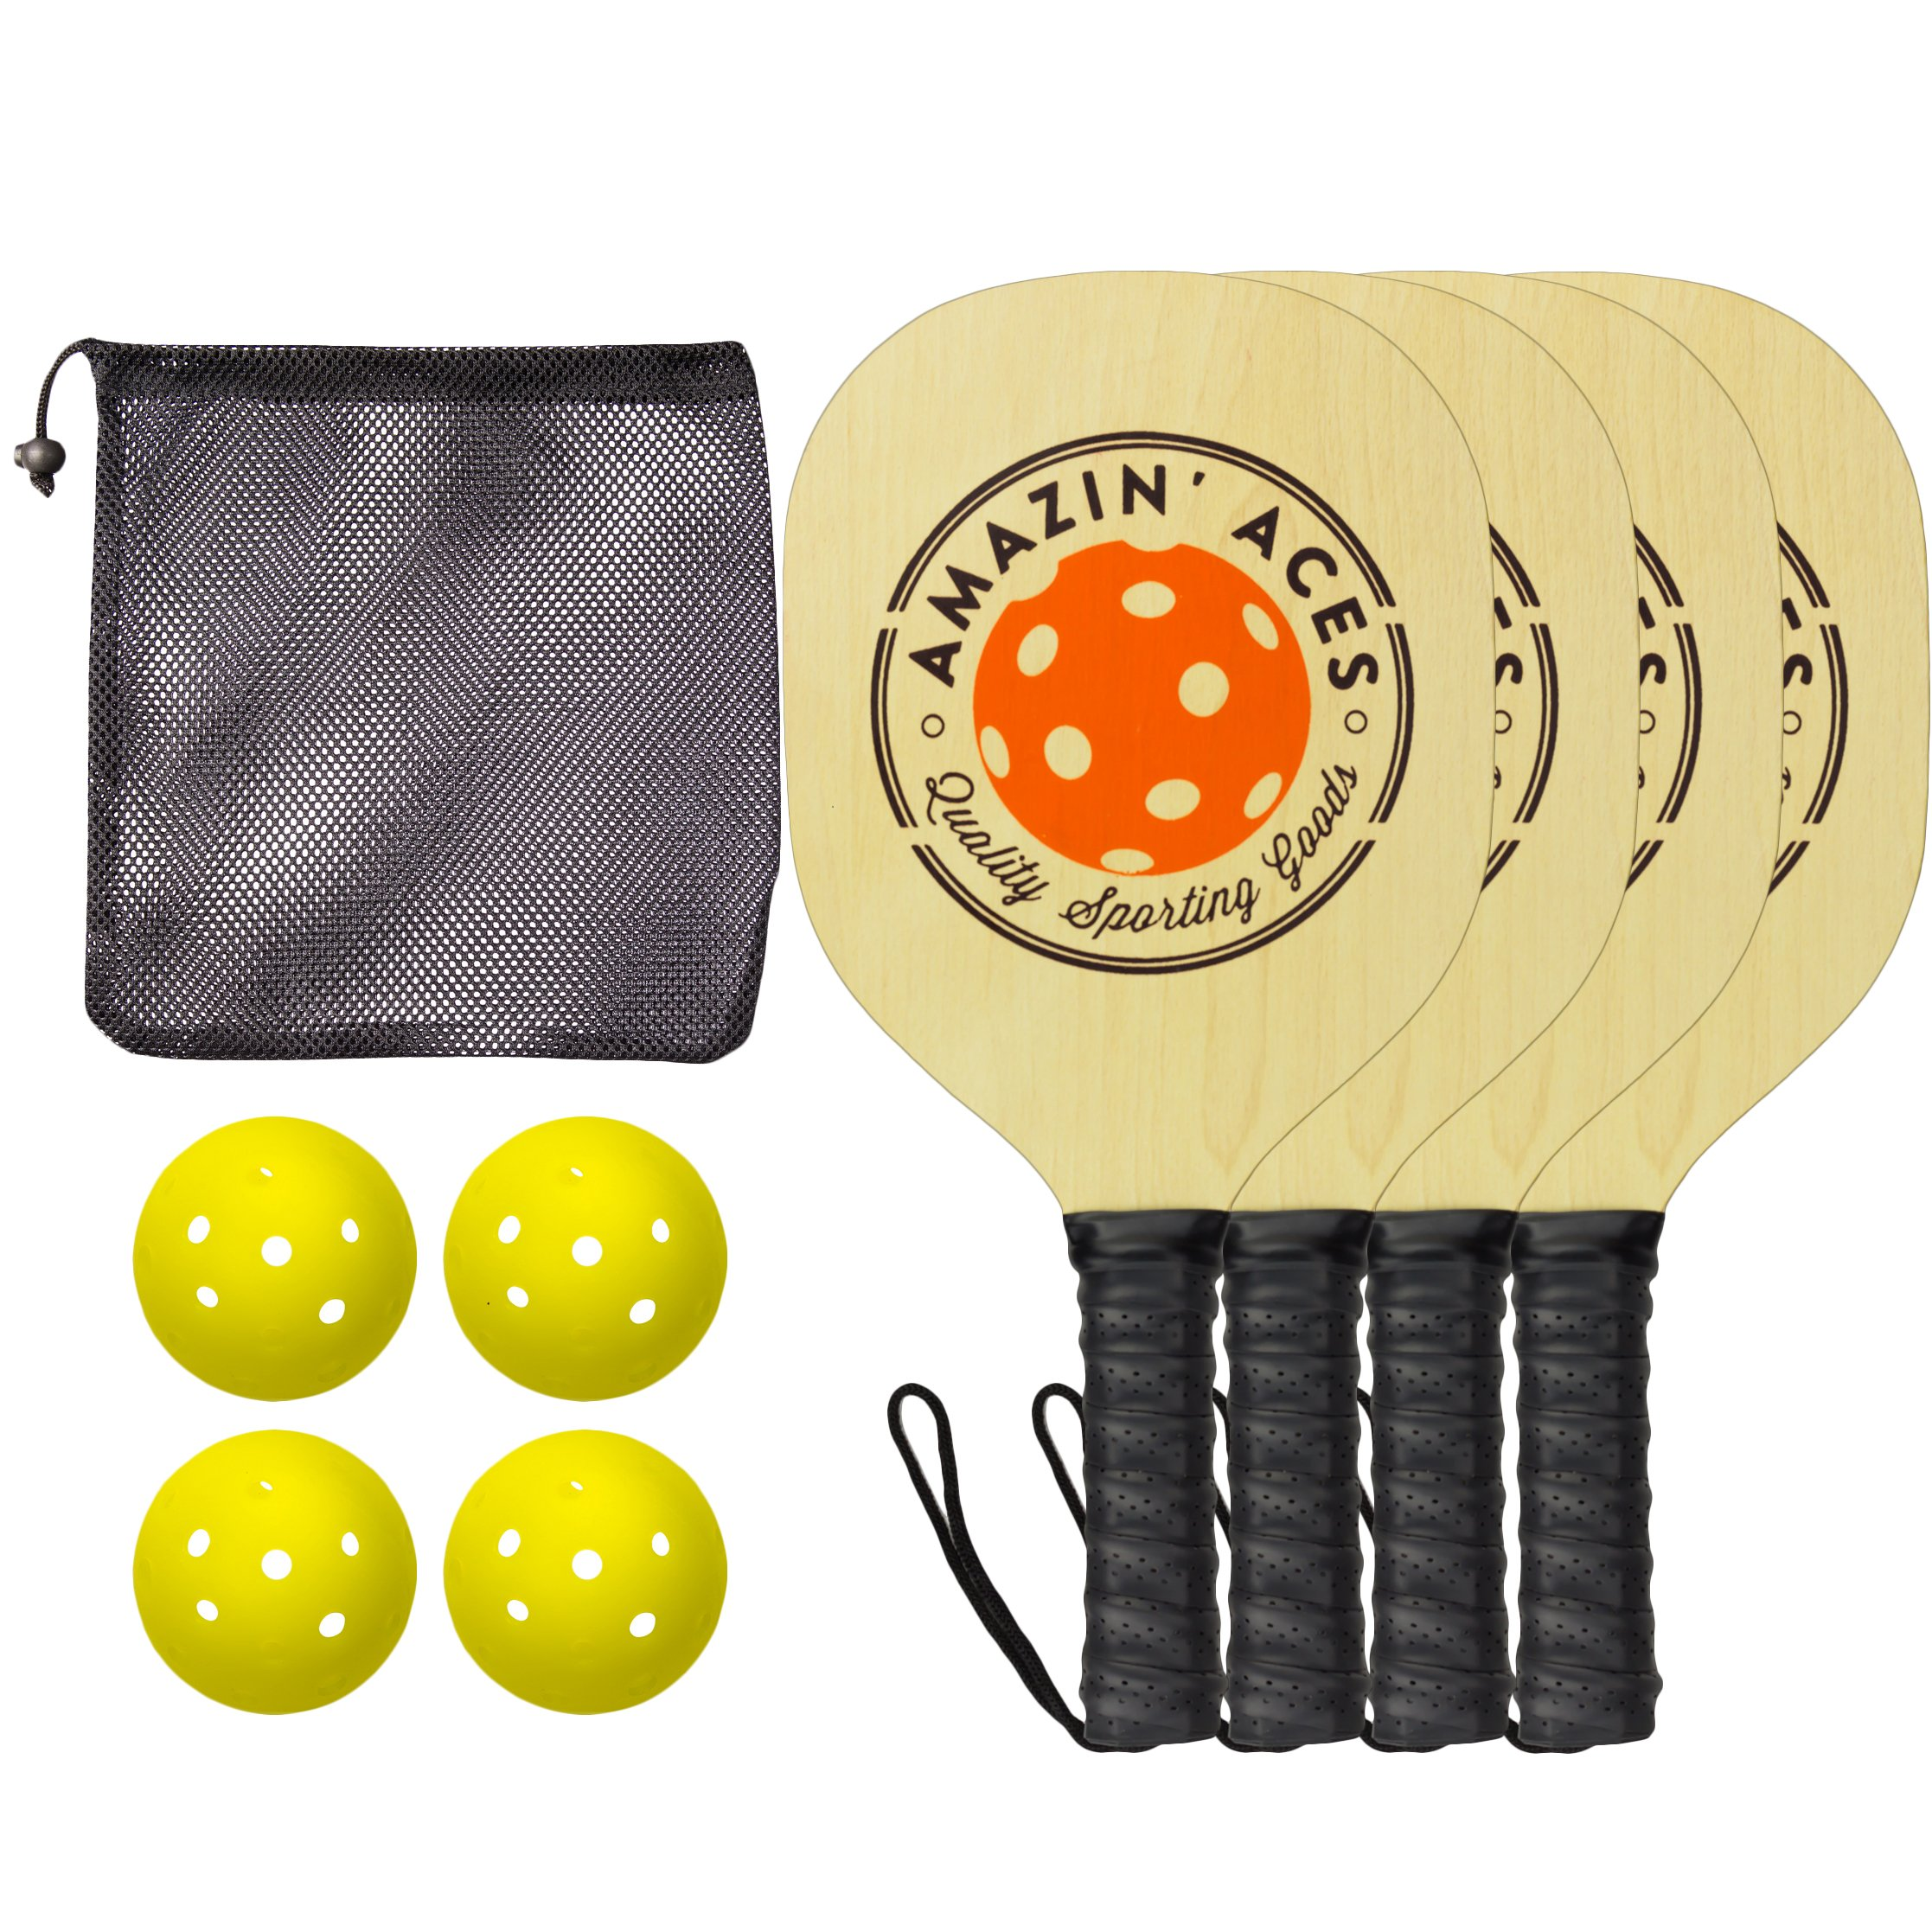 Amazin' Aces Pickleball Paddles | Set Includes 4 Wood Pickleball Paddles + 4 Pickleballs + 1 Mesh Carry Bag | Great Rackets For Beginners | Pickleball Paddle Set Includes eBook w/Rules & Tips